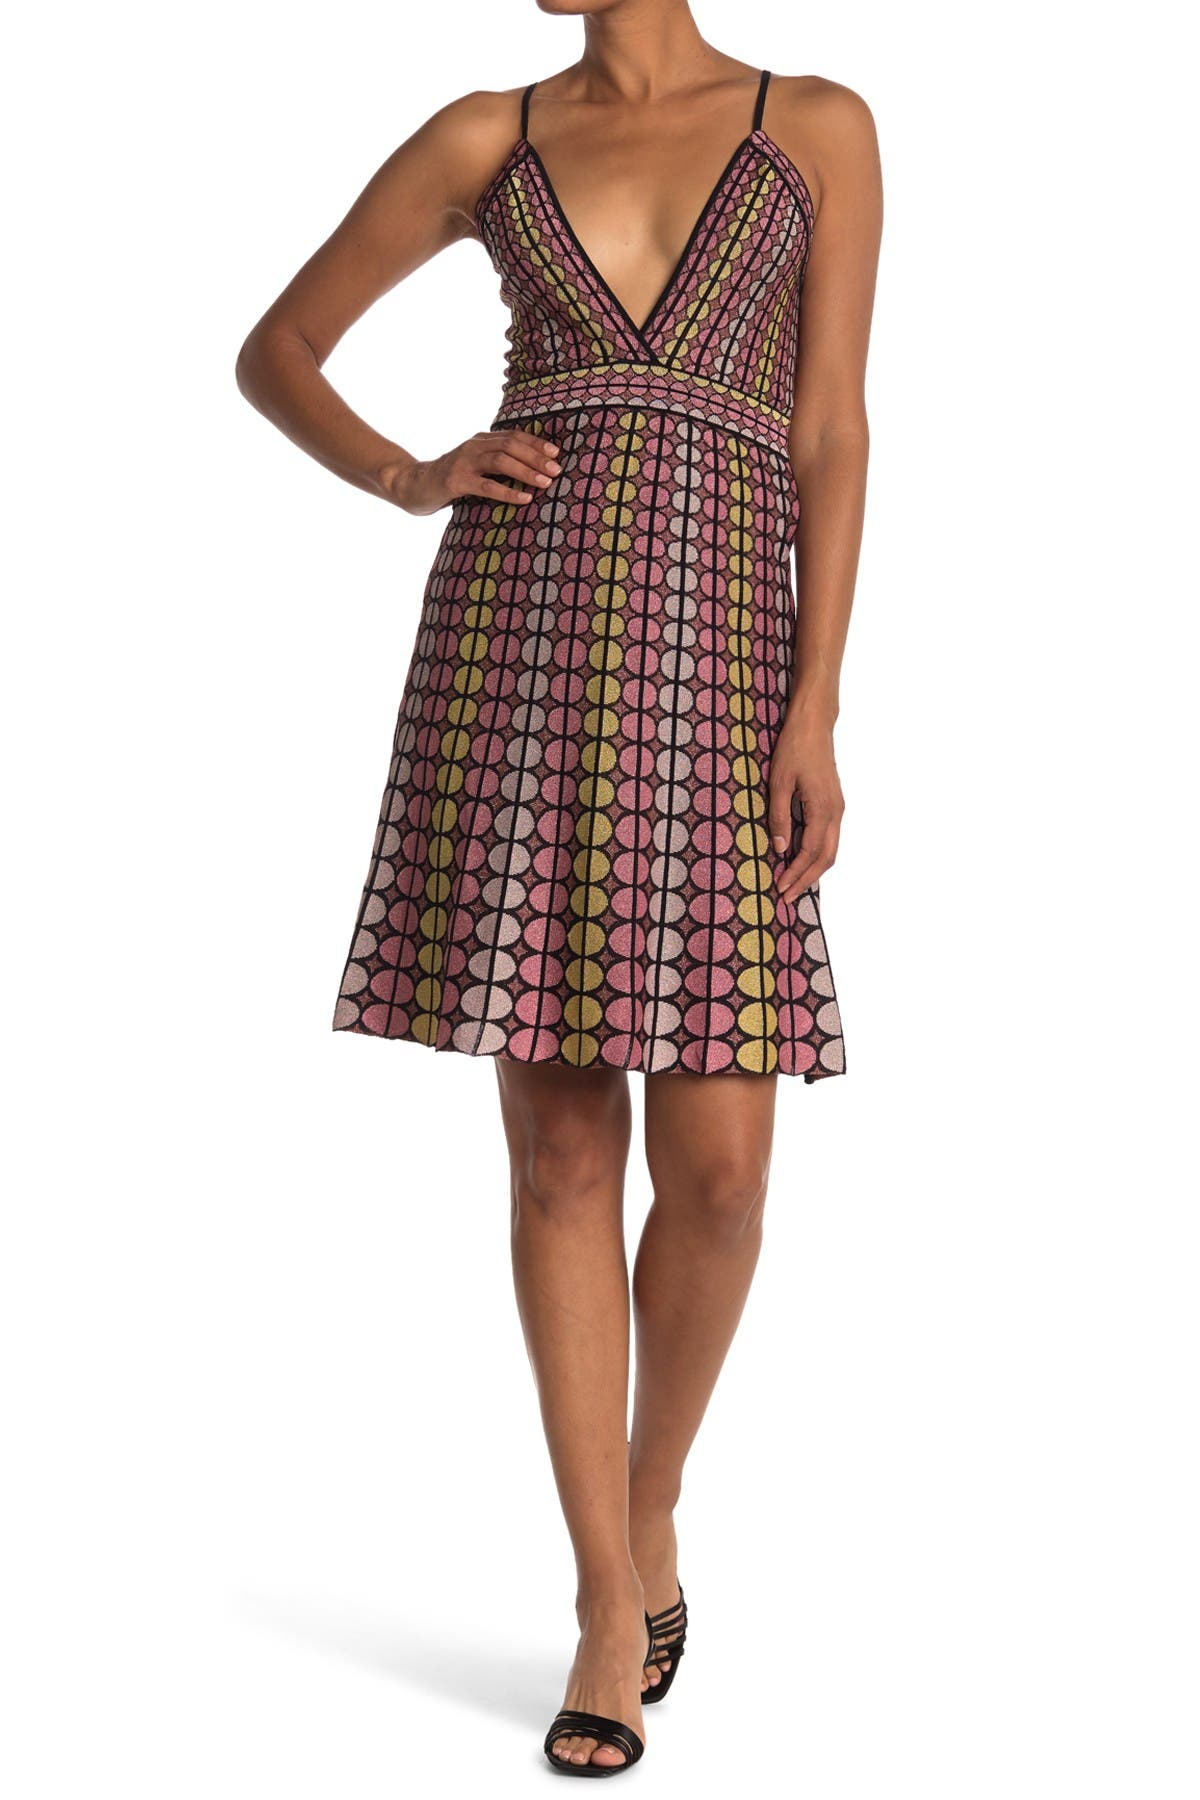 Image of M Missoni Plunge Neck Patterned Dress